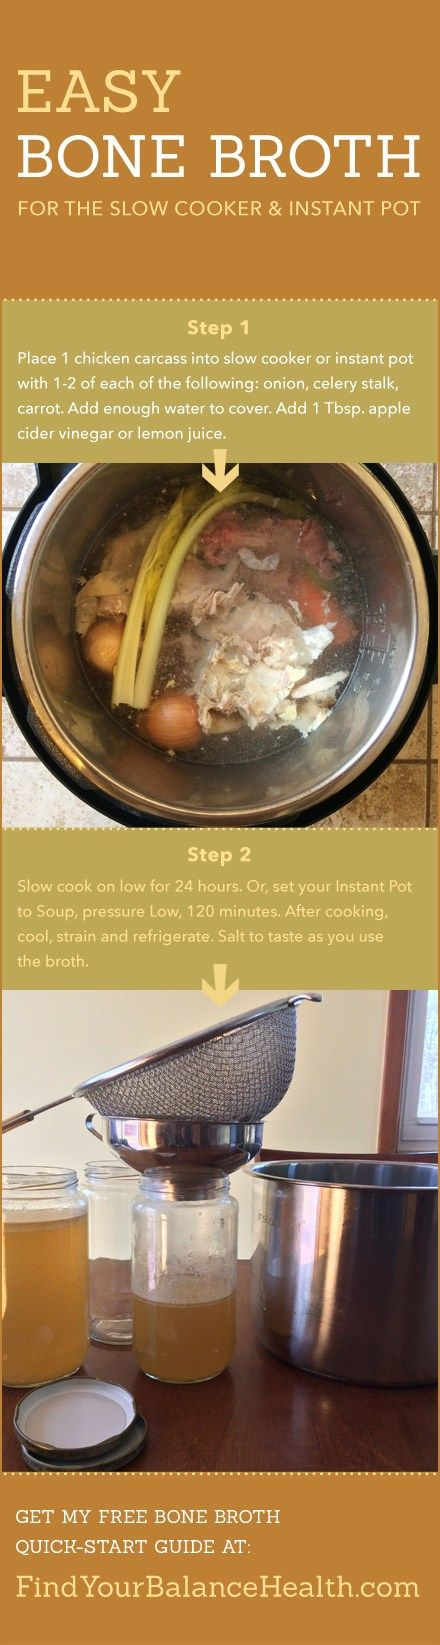 Bone Broth Benefits & Easy Recipe (Slow cooker or Instant Pot) http://ift.tt/2mLBOSI